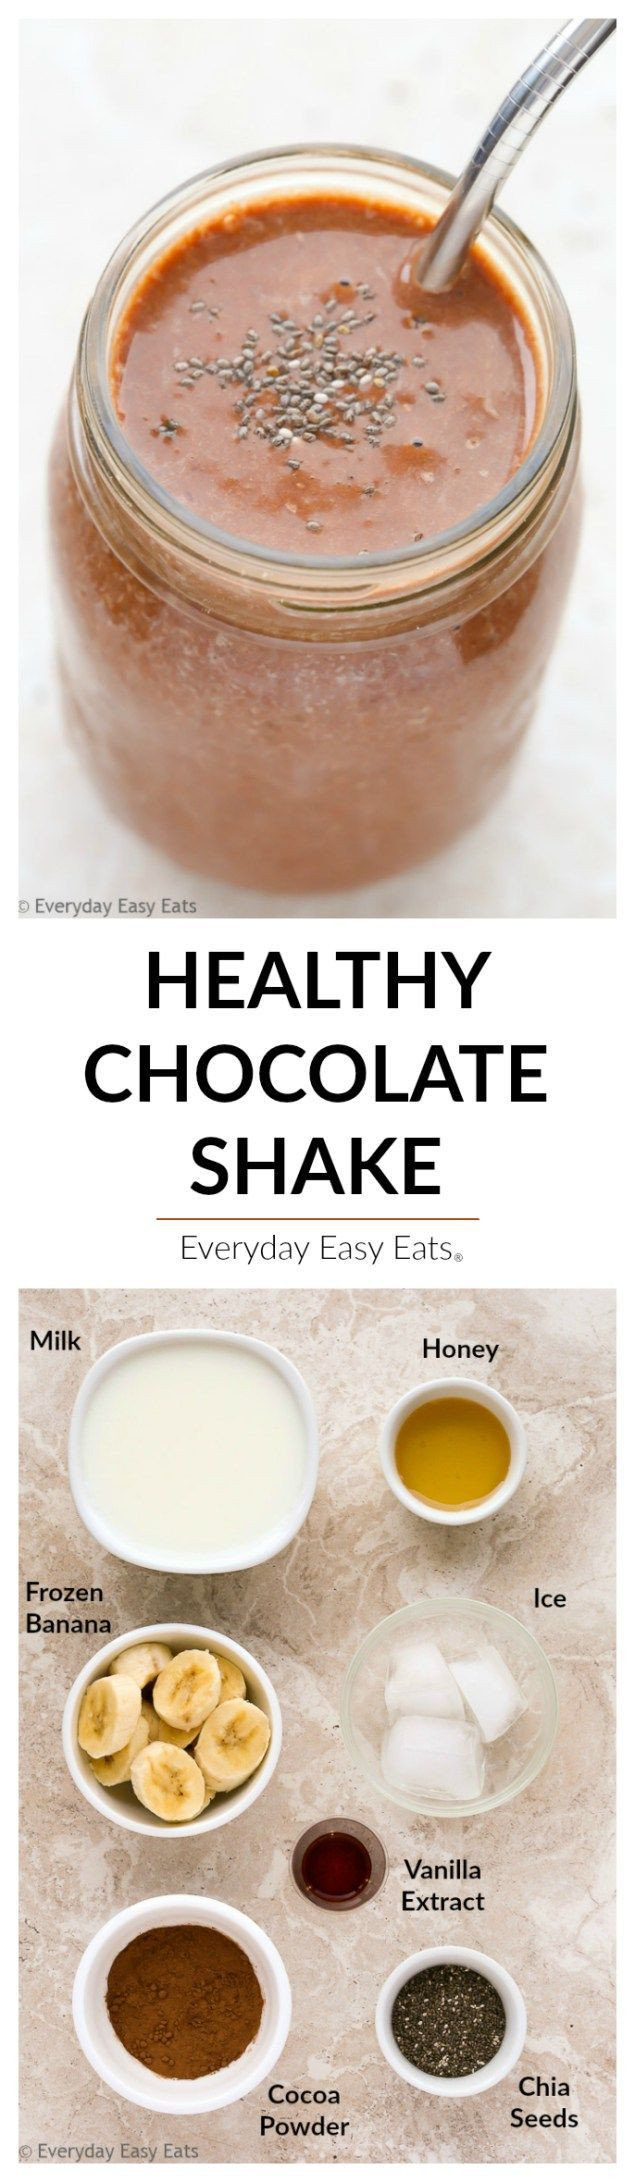 Is Cocoa Powder Healthy  Best 25 Healthy chocolate shakes ideas on Pinterest